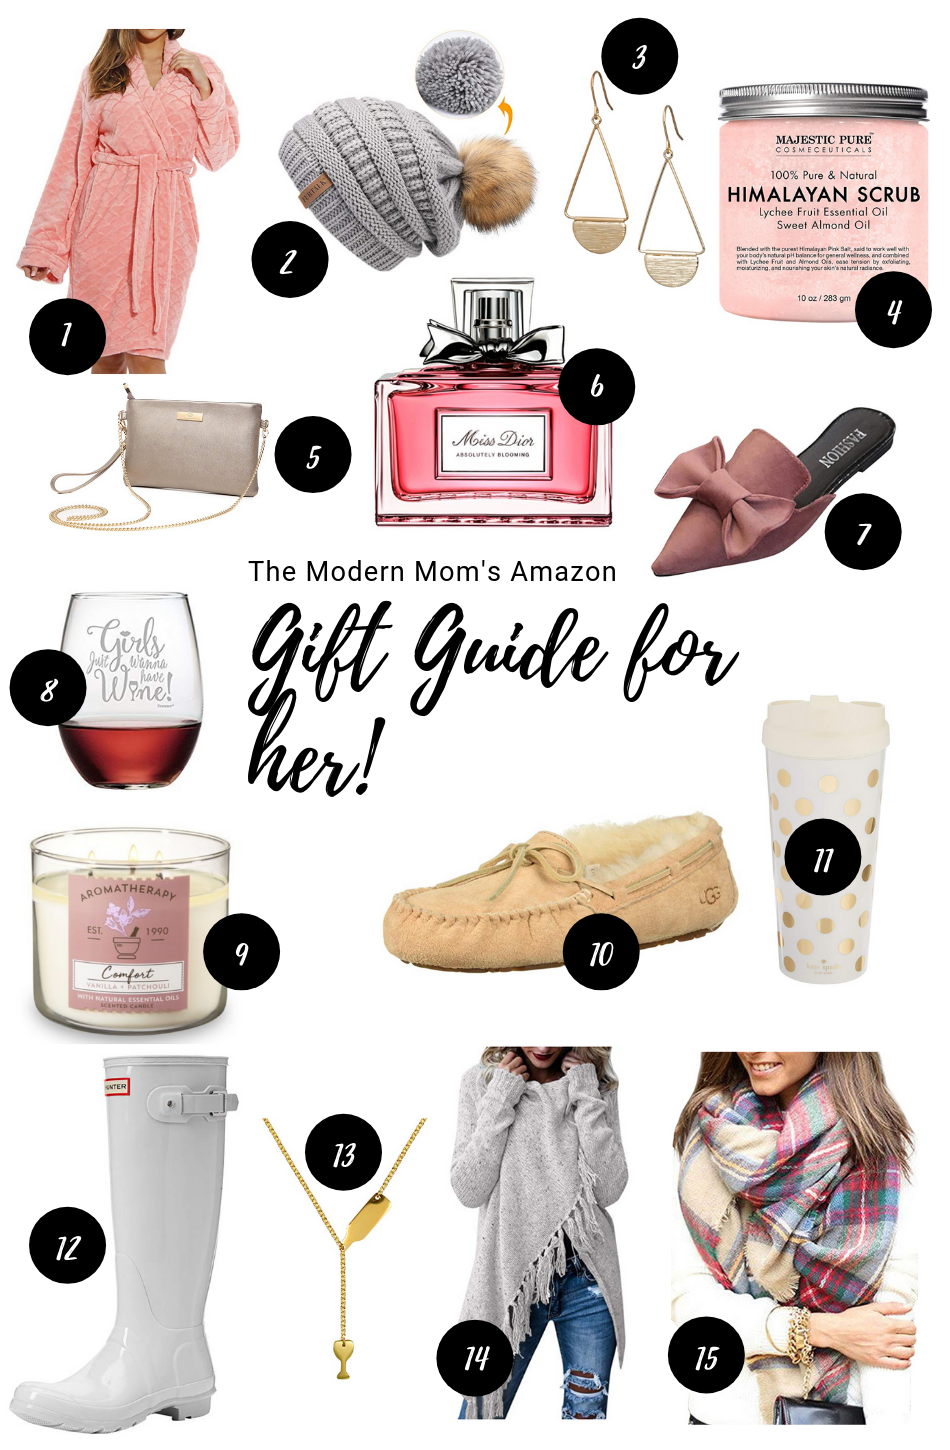 Gift Guide for her!.png